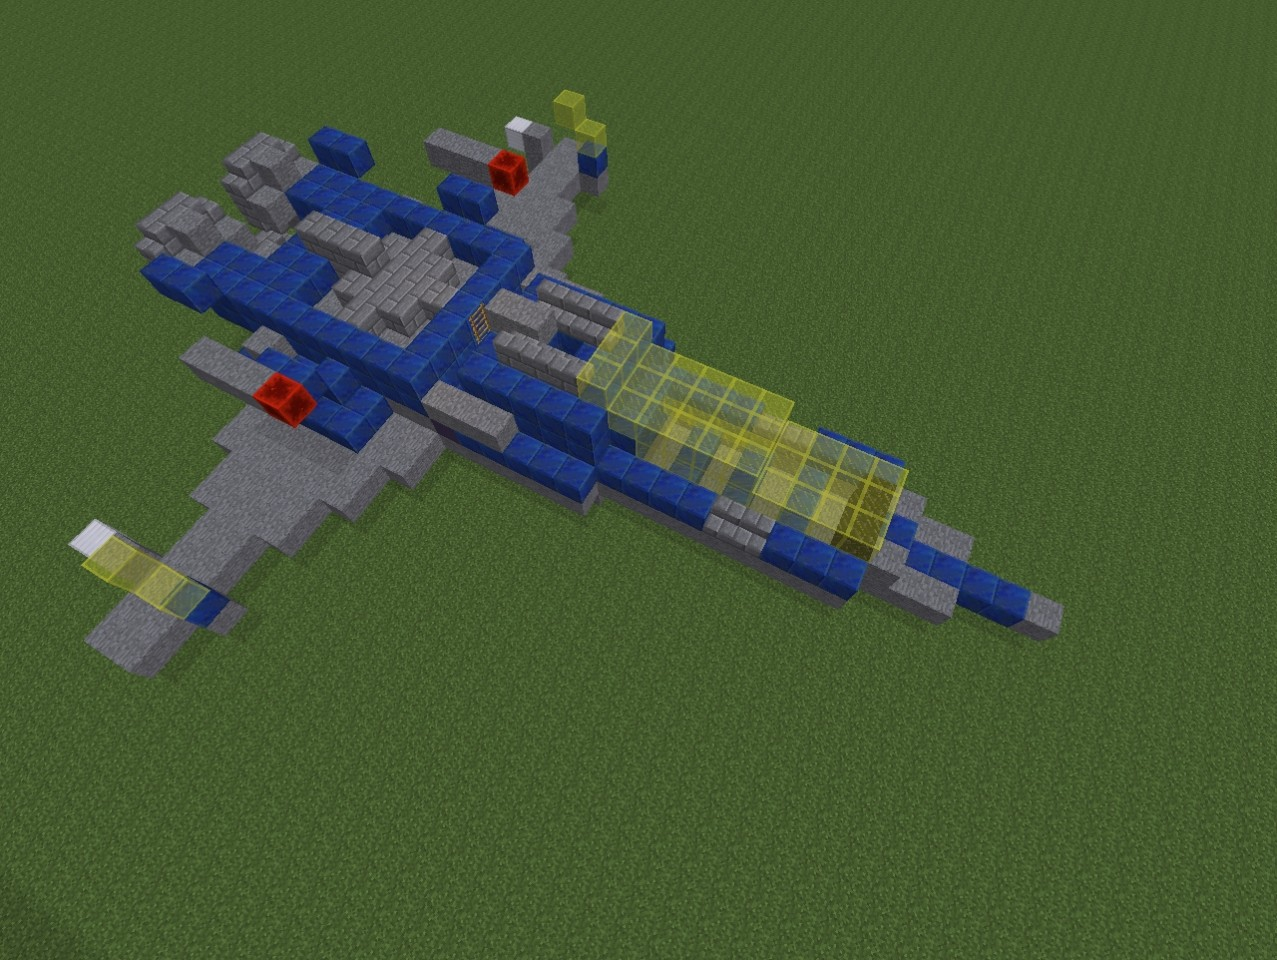 how to make a ship in minecraft that moves